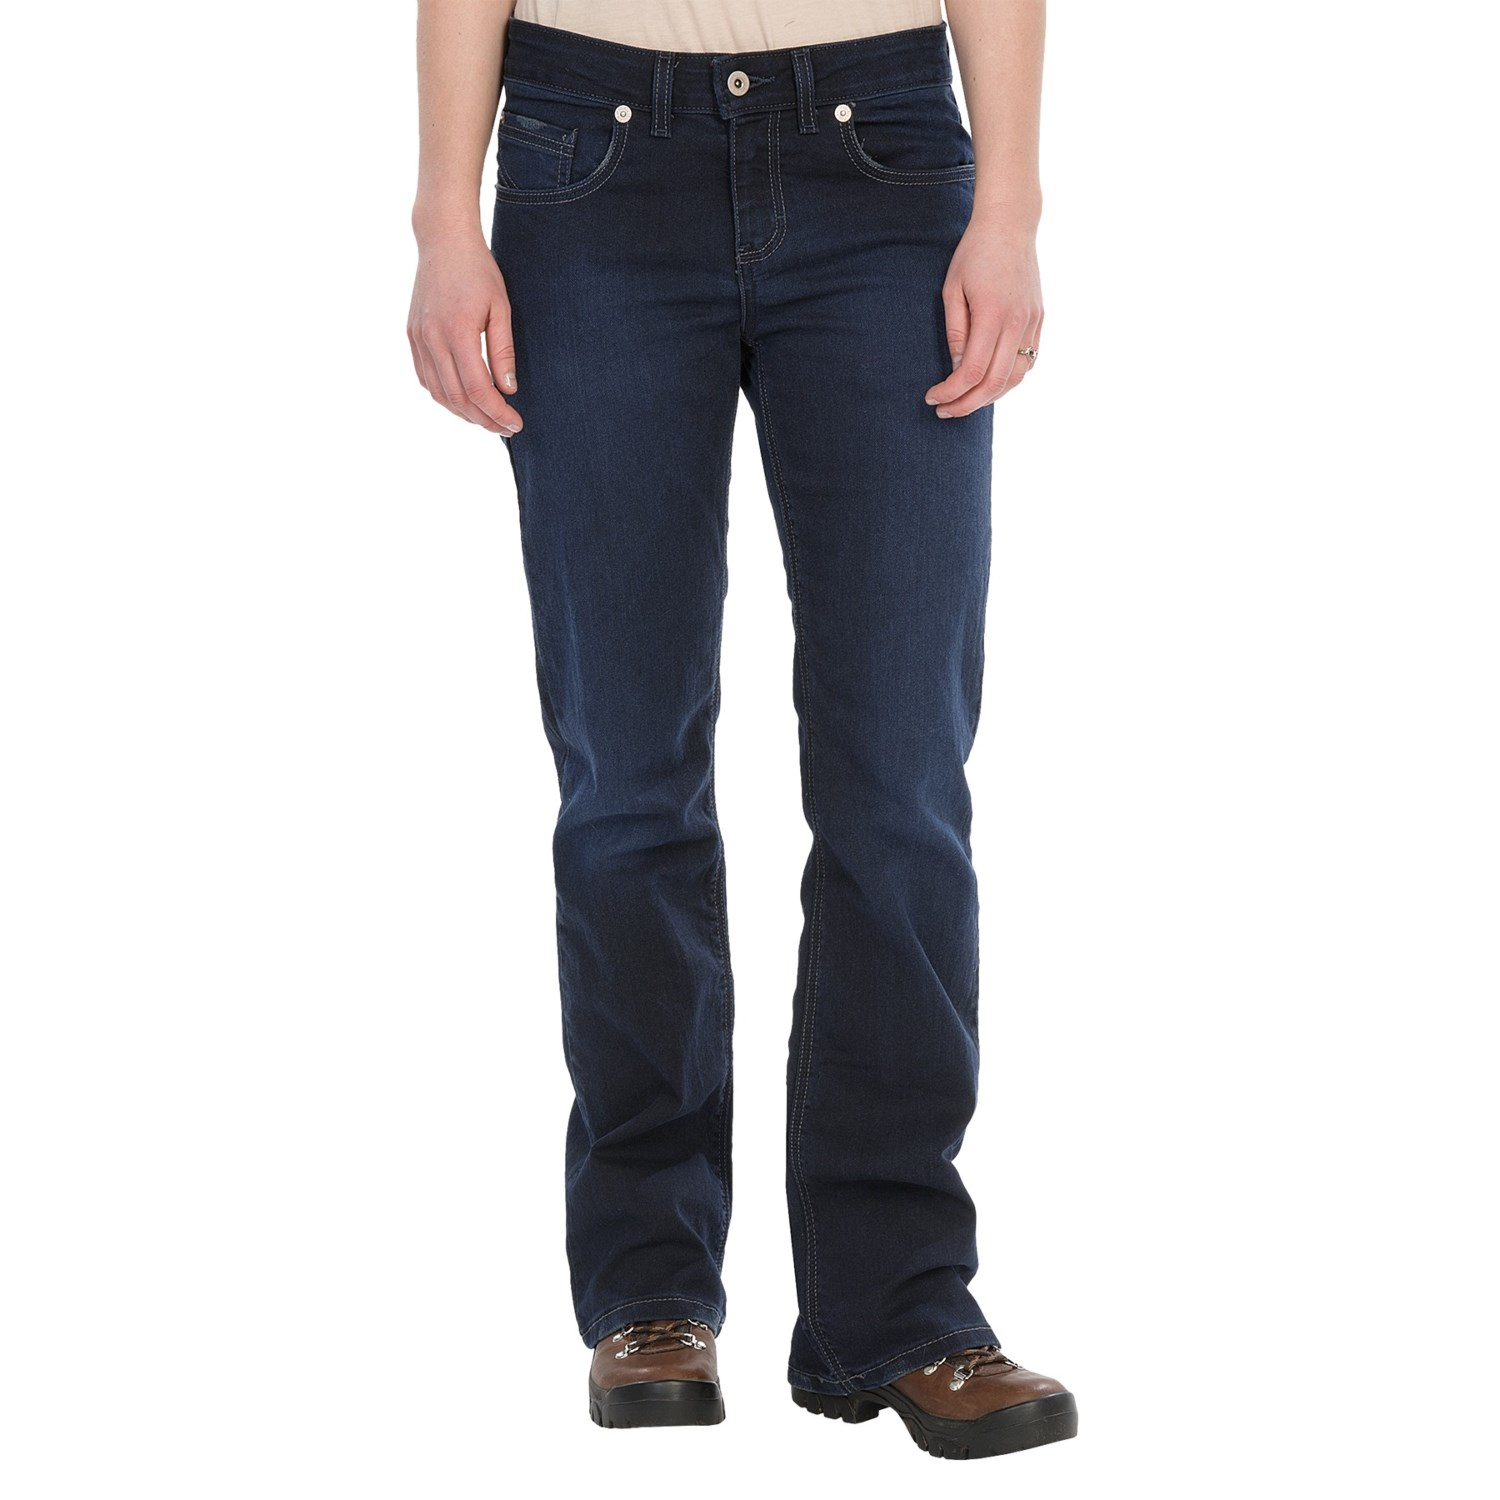 Dickies Slim Bootcut Jeans (For Women) - Save 40%